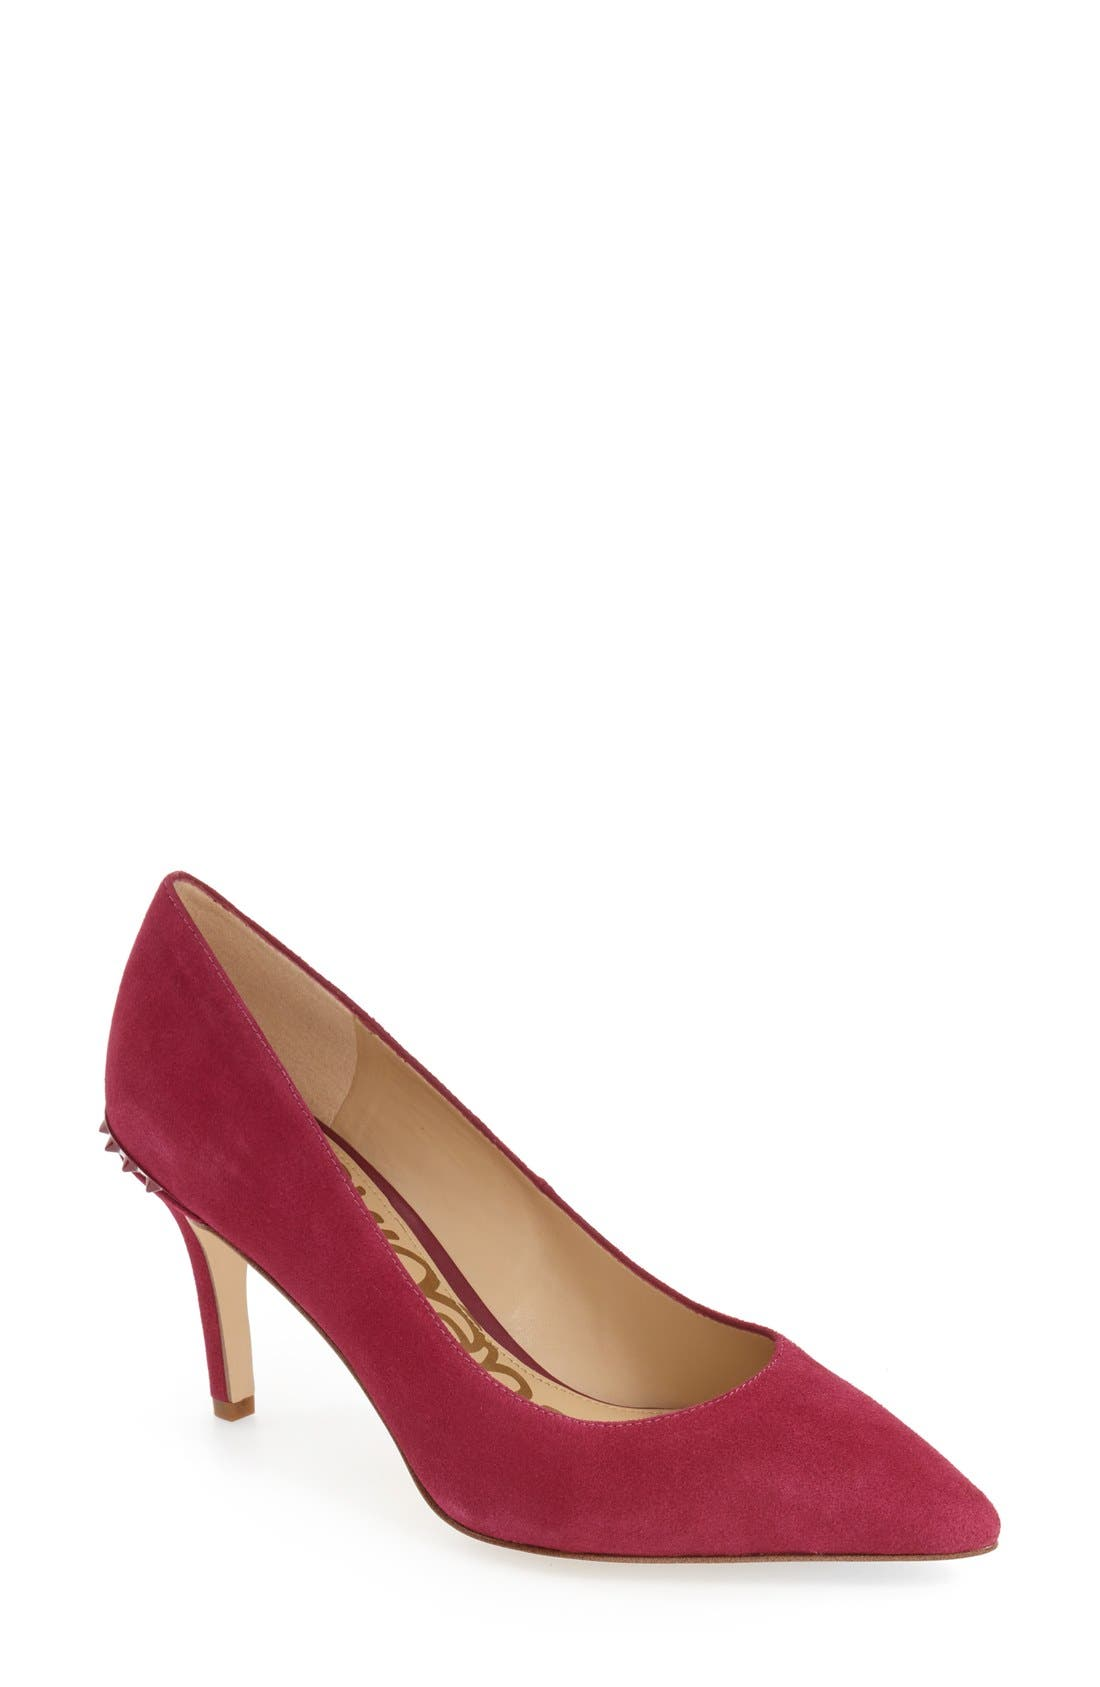 Alternate Image 1 Selected - Sam Edelman 'Tonia' Spike Rand Pointy Toe Pump (Women)